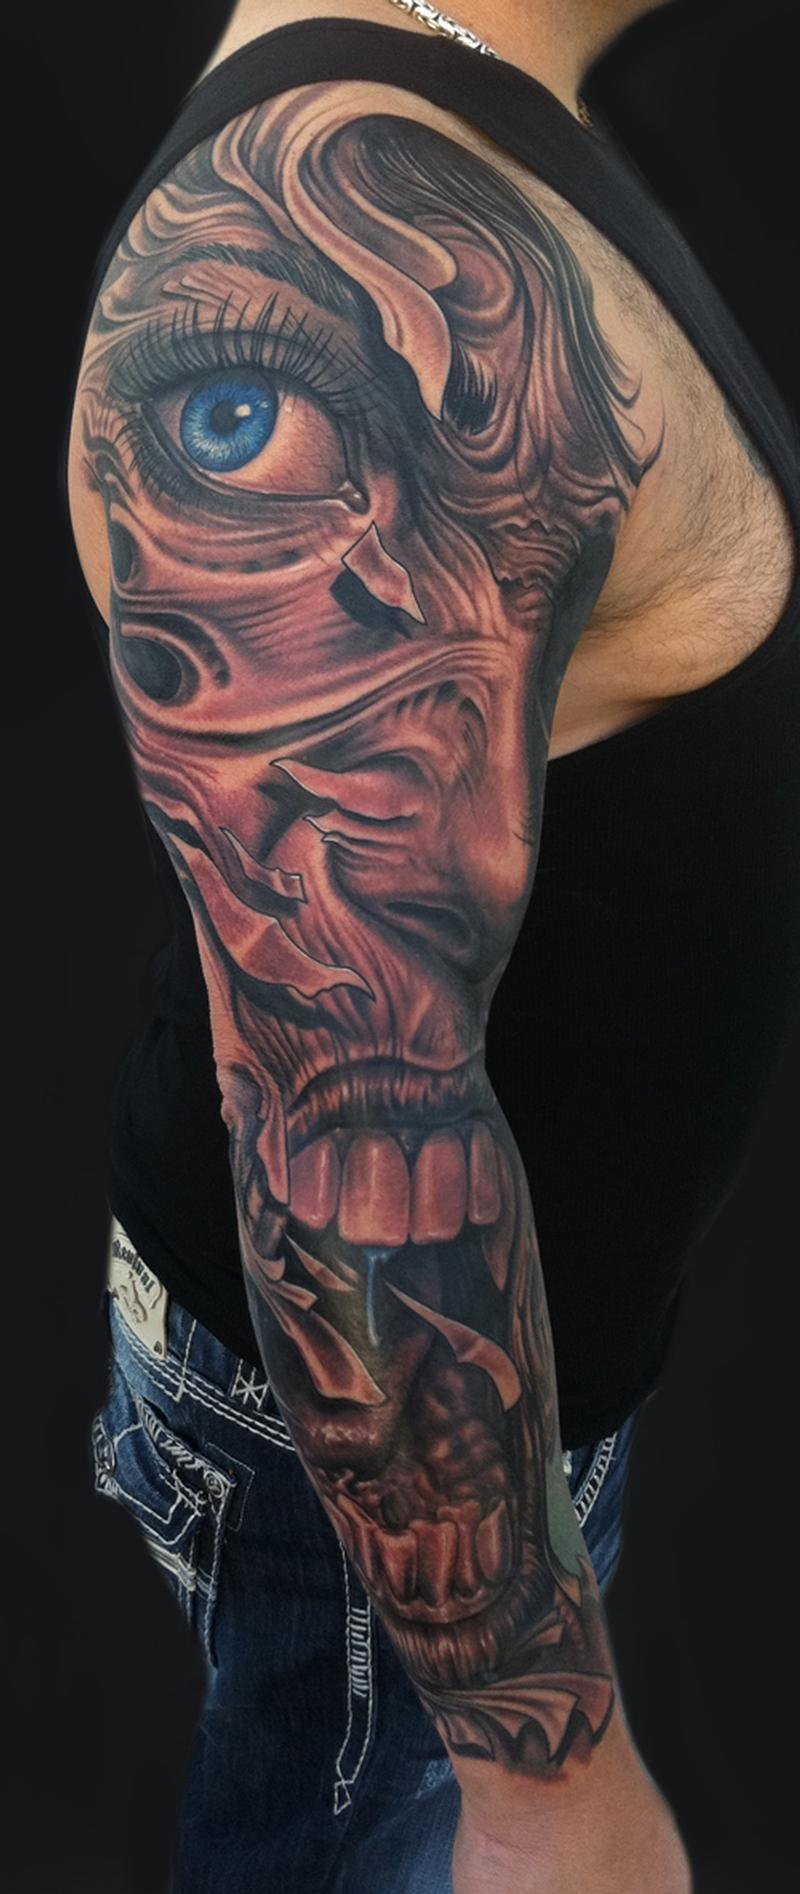 Mike devries tattoos black and gray face sleeve for Forearm tattoo sleeves